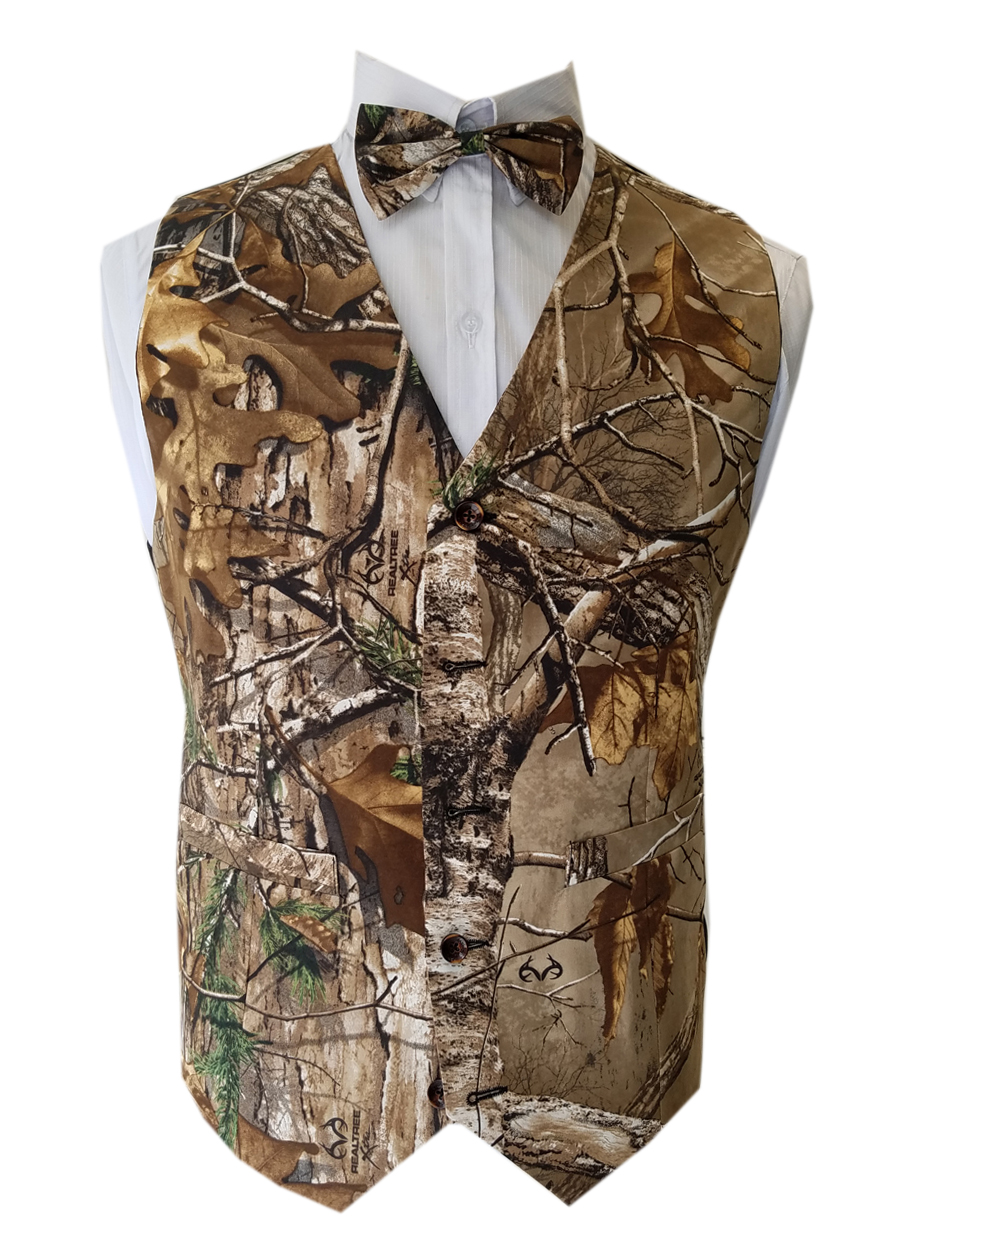 Man Camouflage Vests For Wedding Groom Wear Realtree AP Camo Vests Bow Ties Custom Make Free Shipping